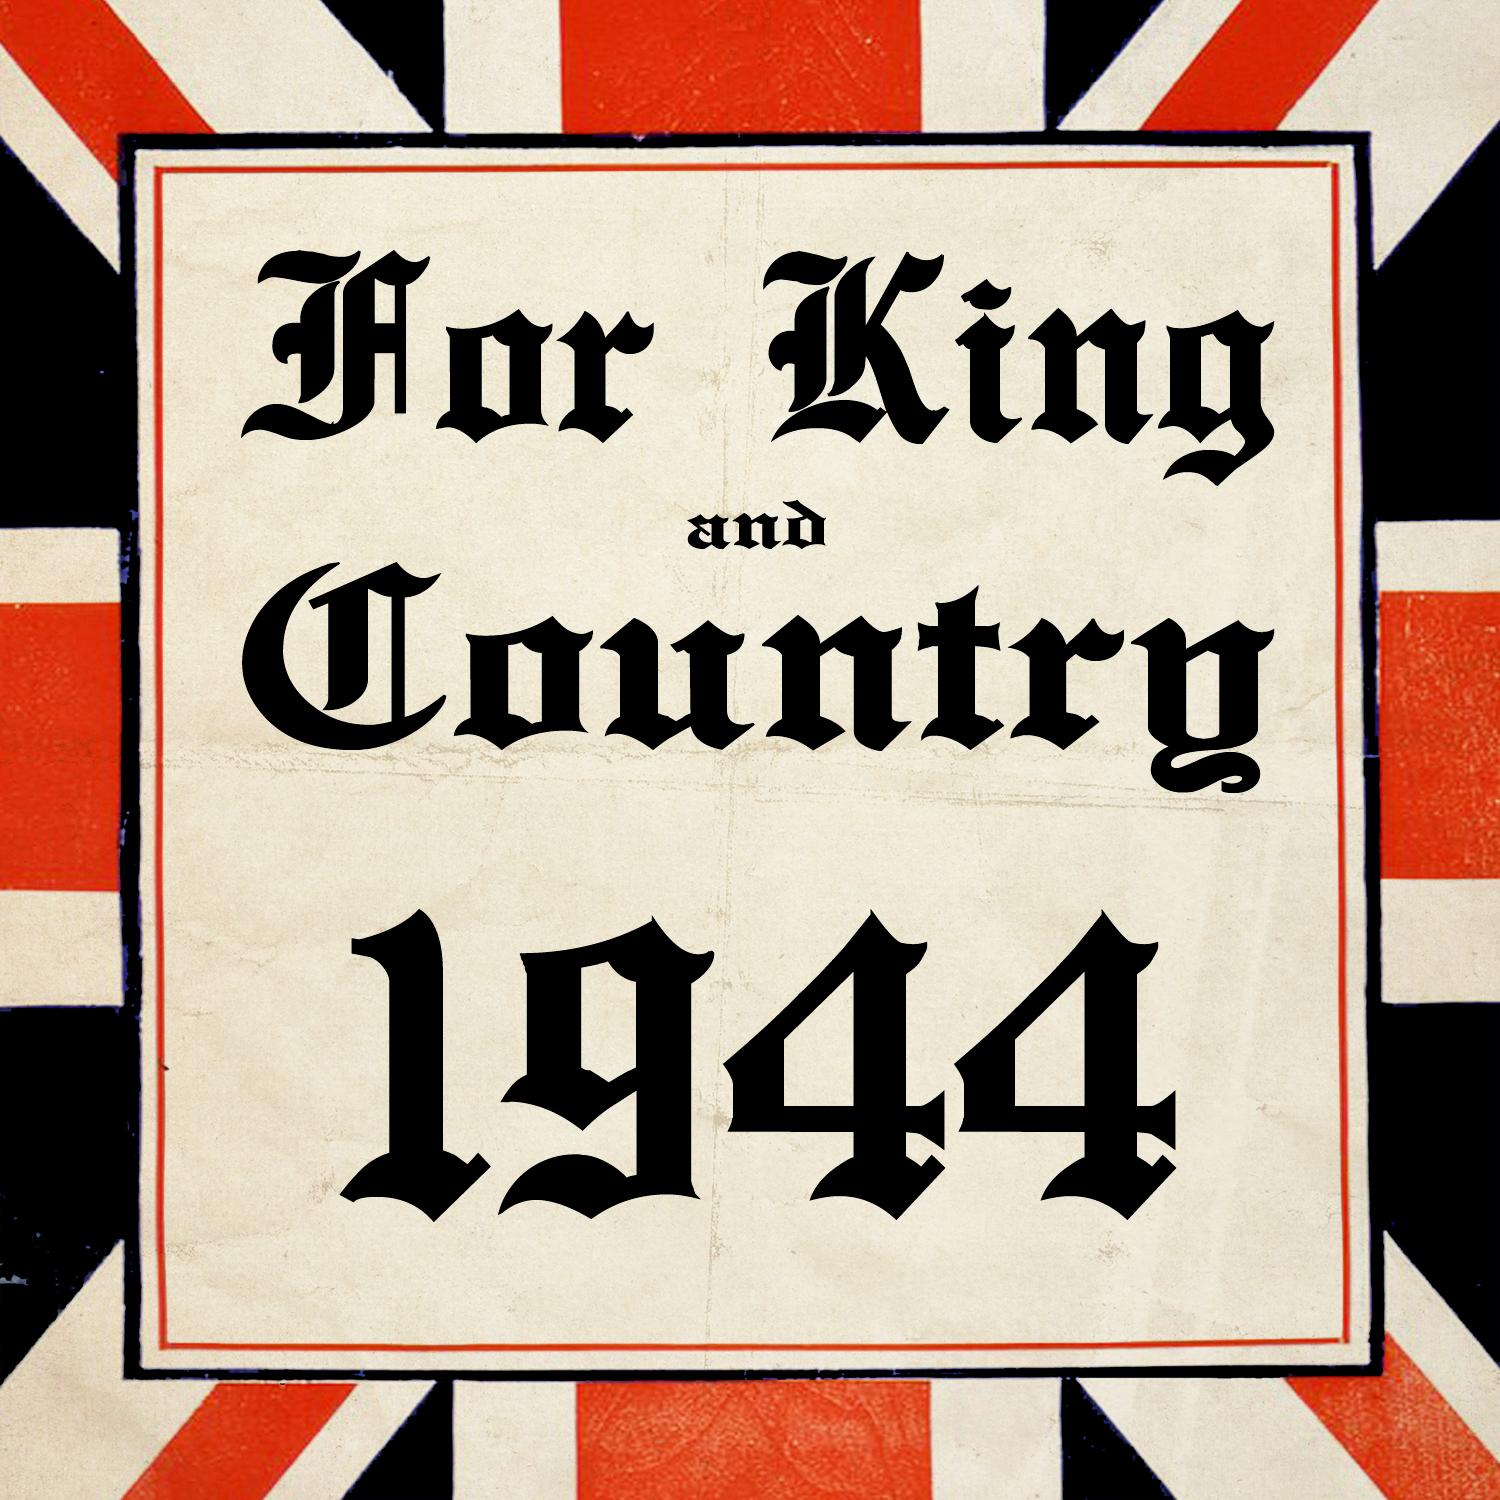 For King and Country: 1944